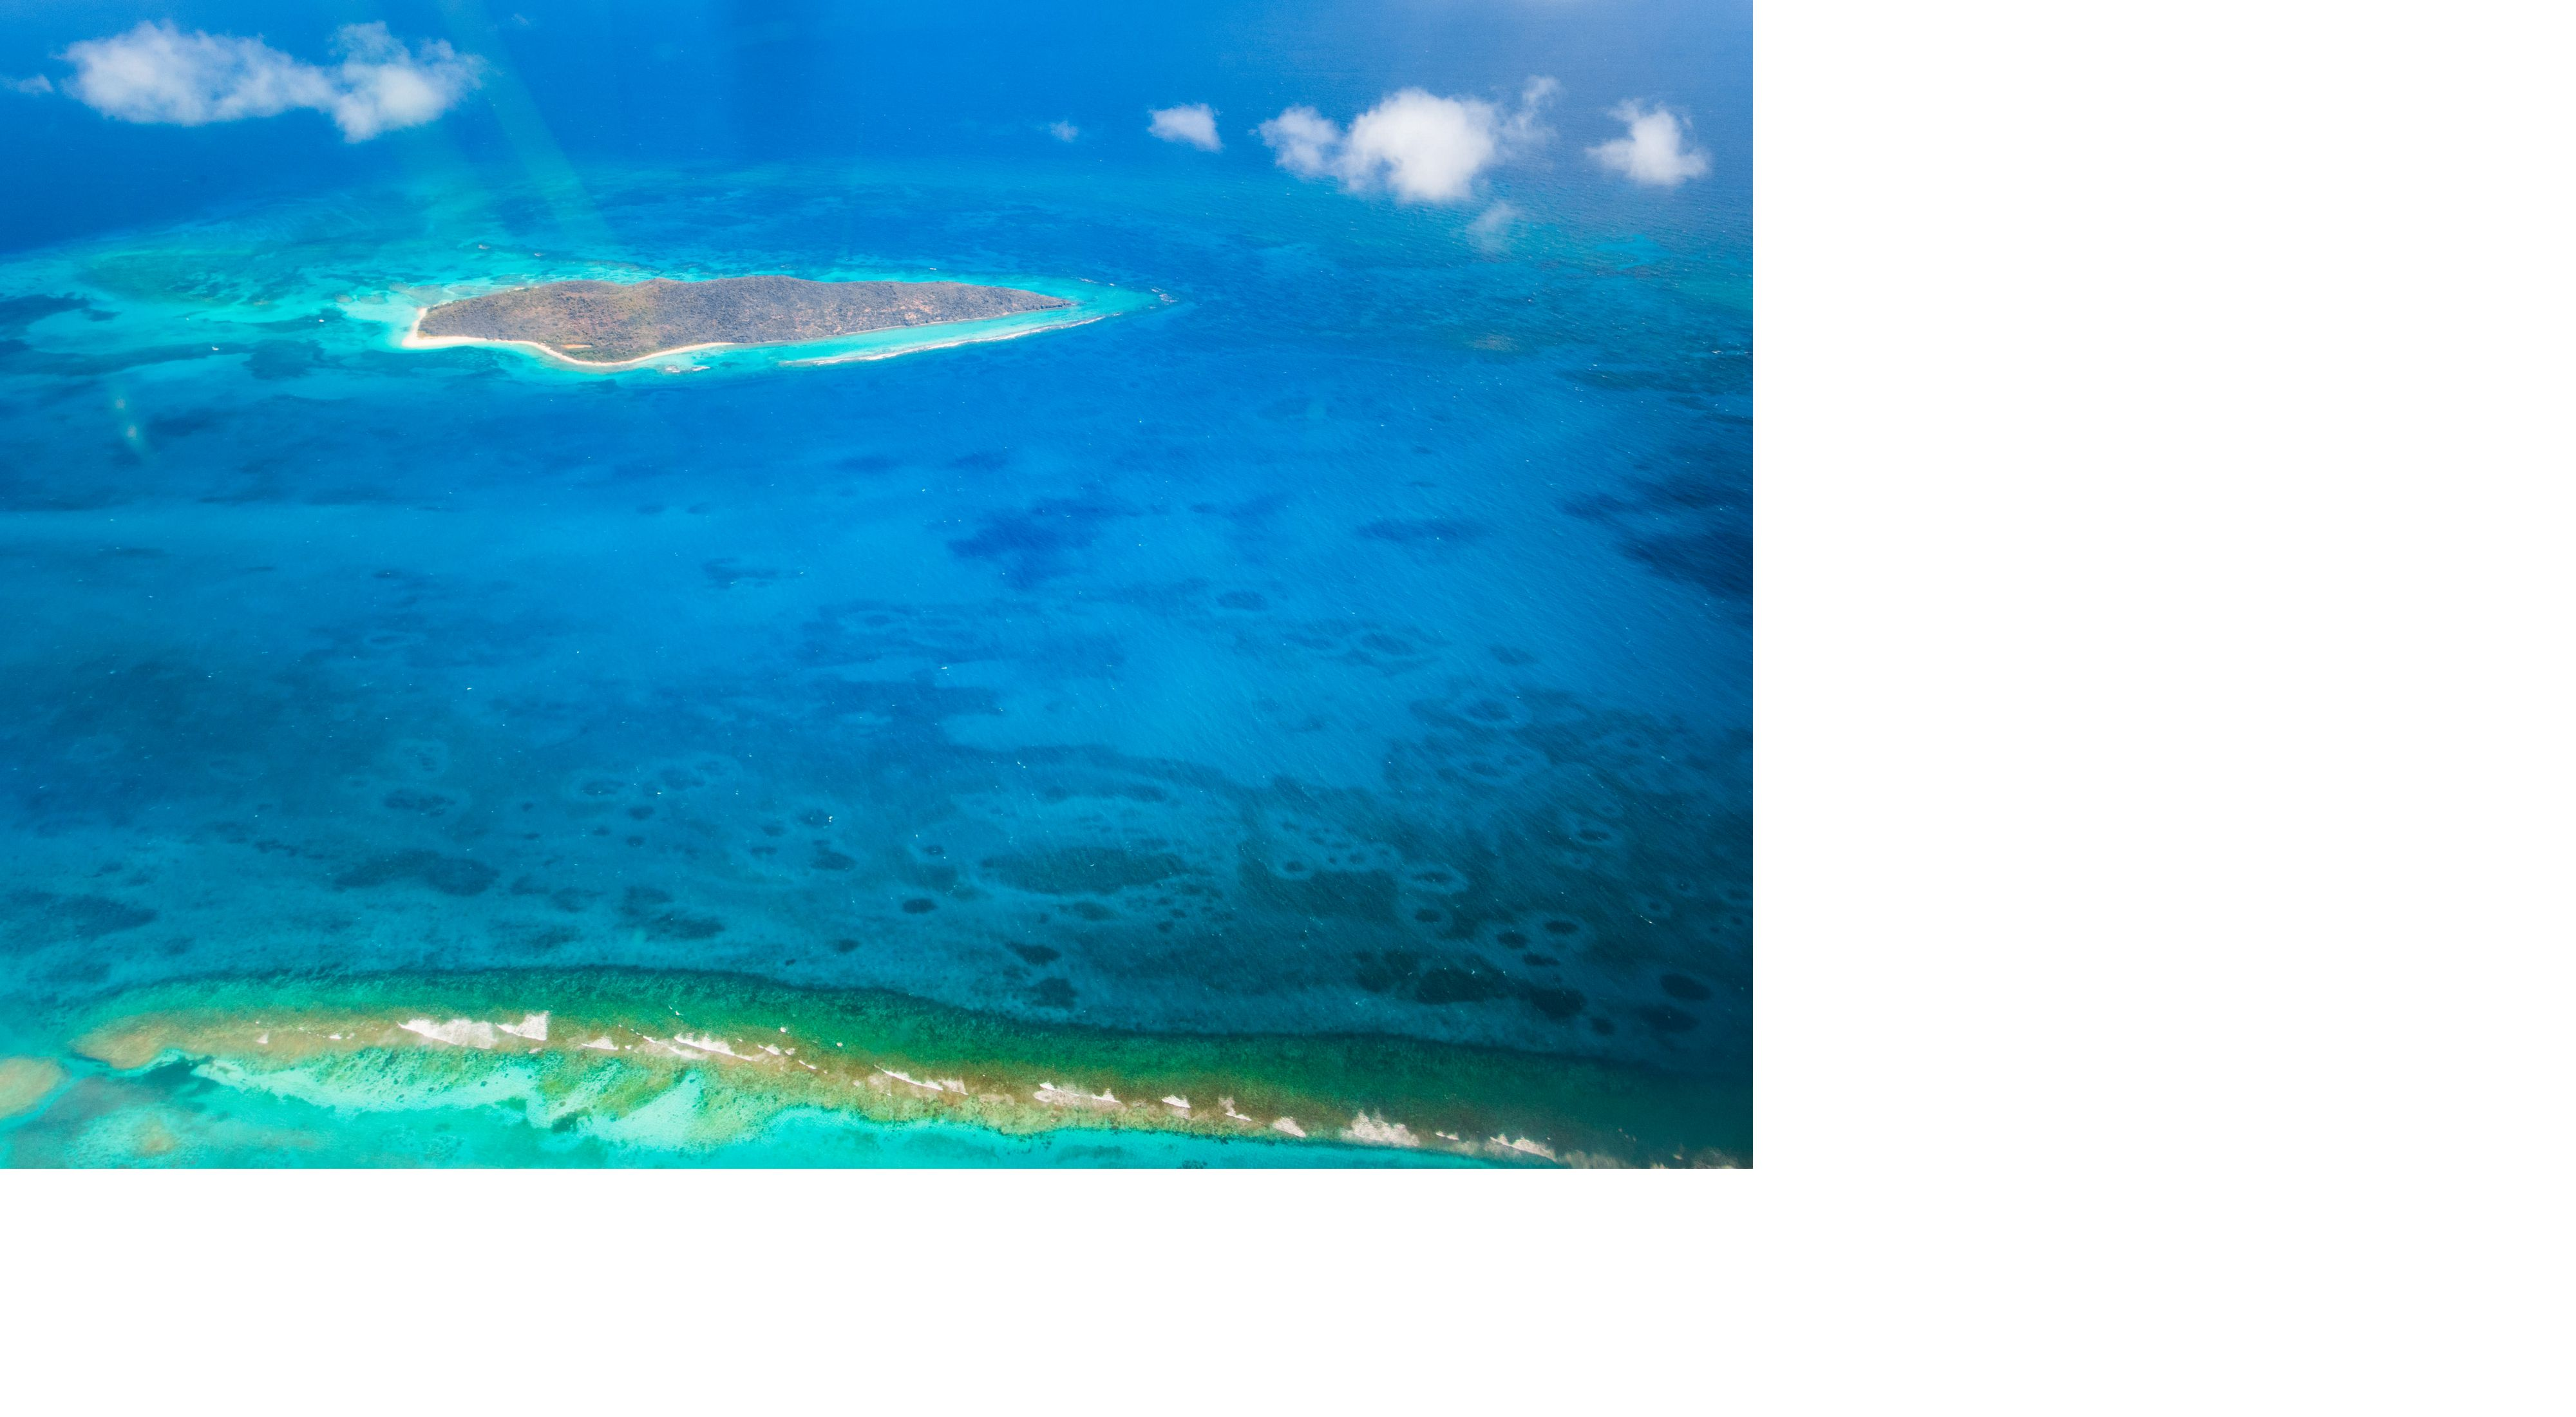 An aerial view of coral reefs in a blue ocean.